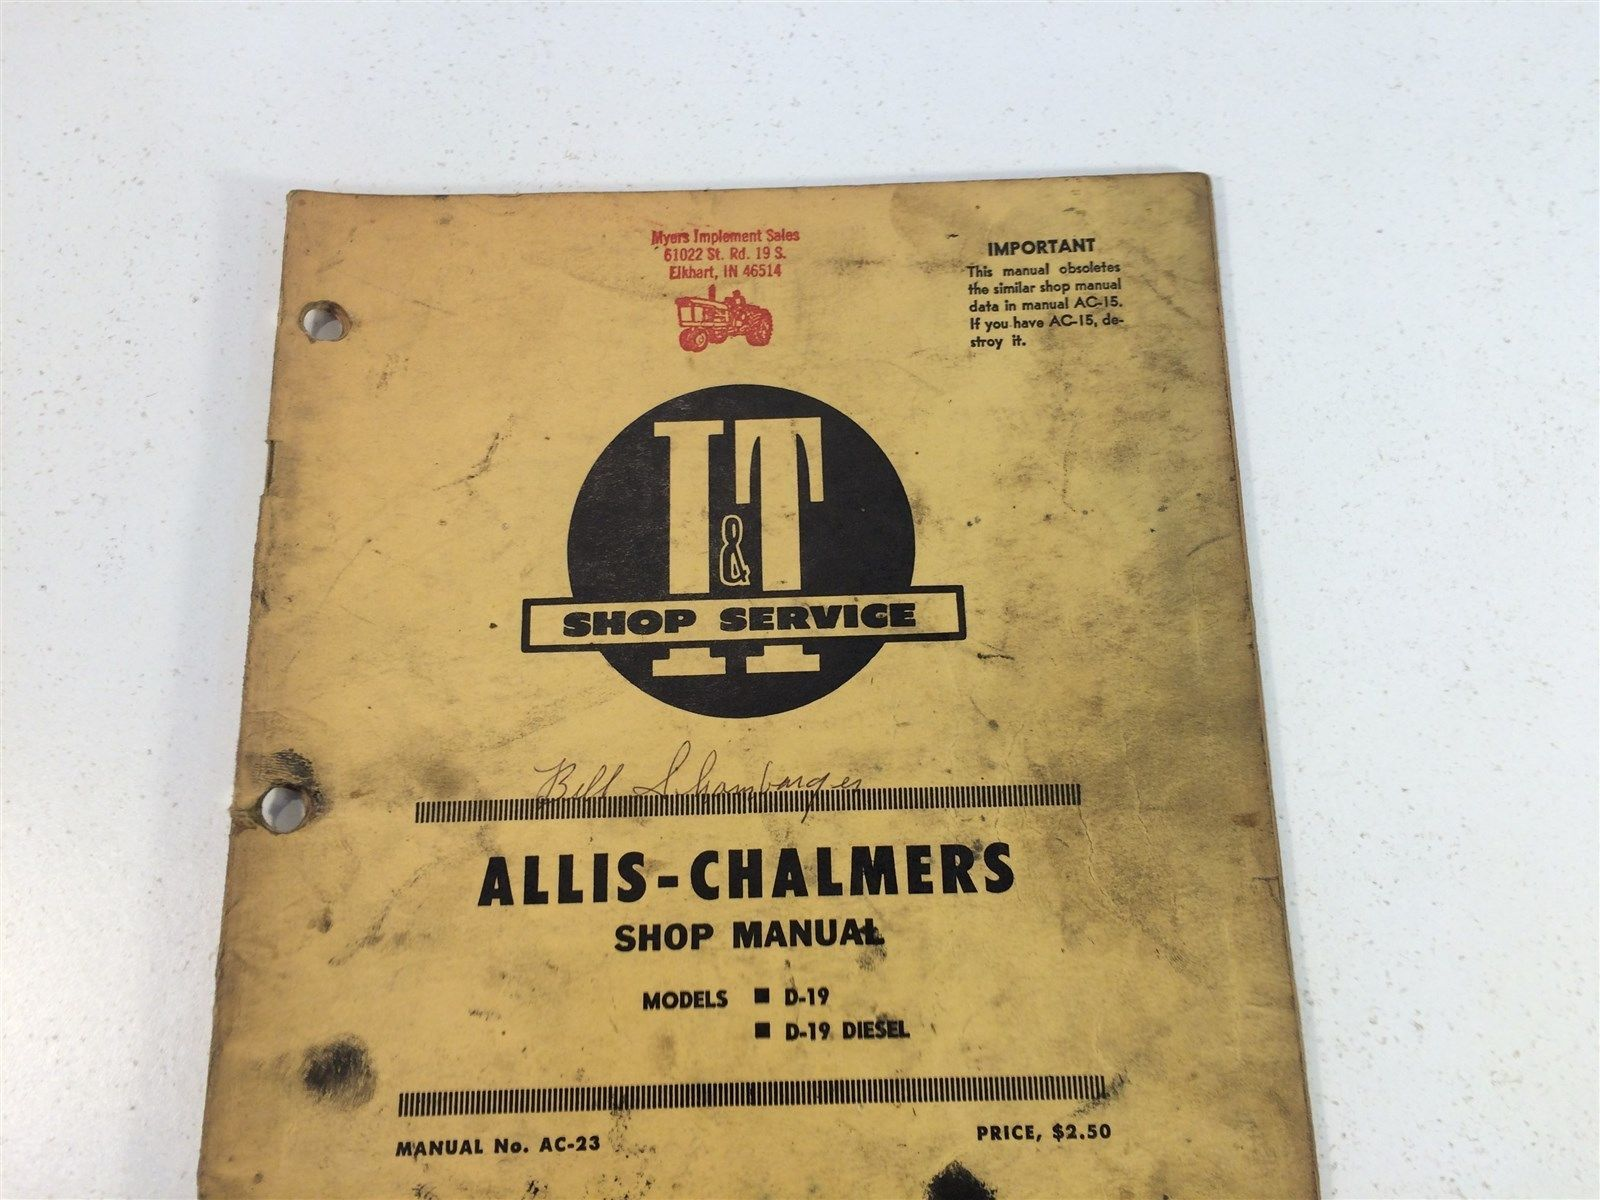 Vintage 1967 Implement & Tractor Shop Manual - Allis-Chalmers D-19 D-19 Diesel